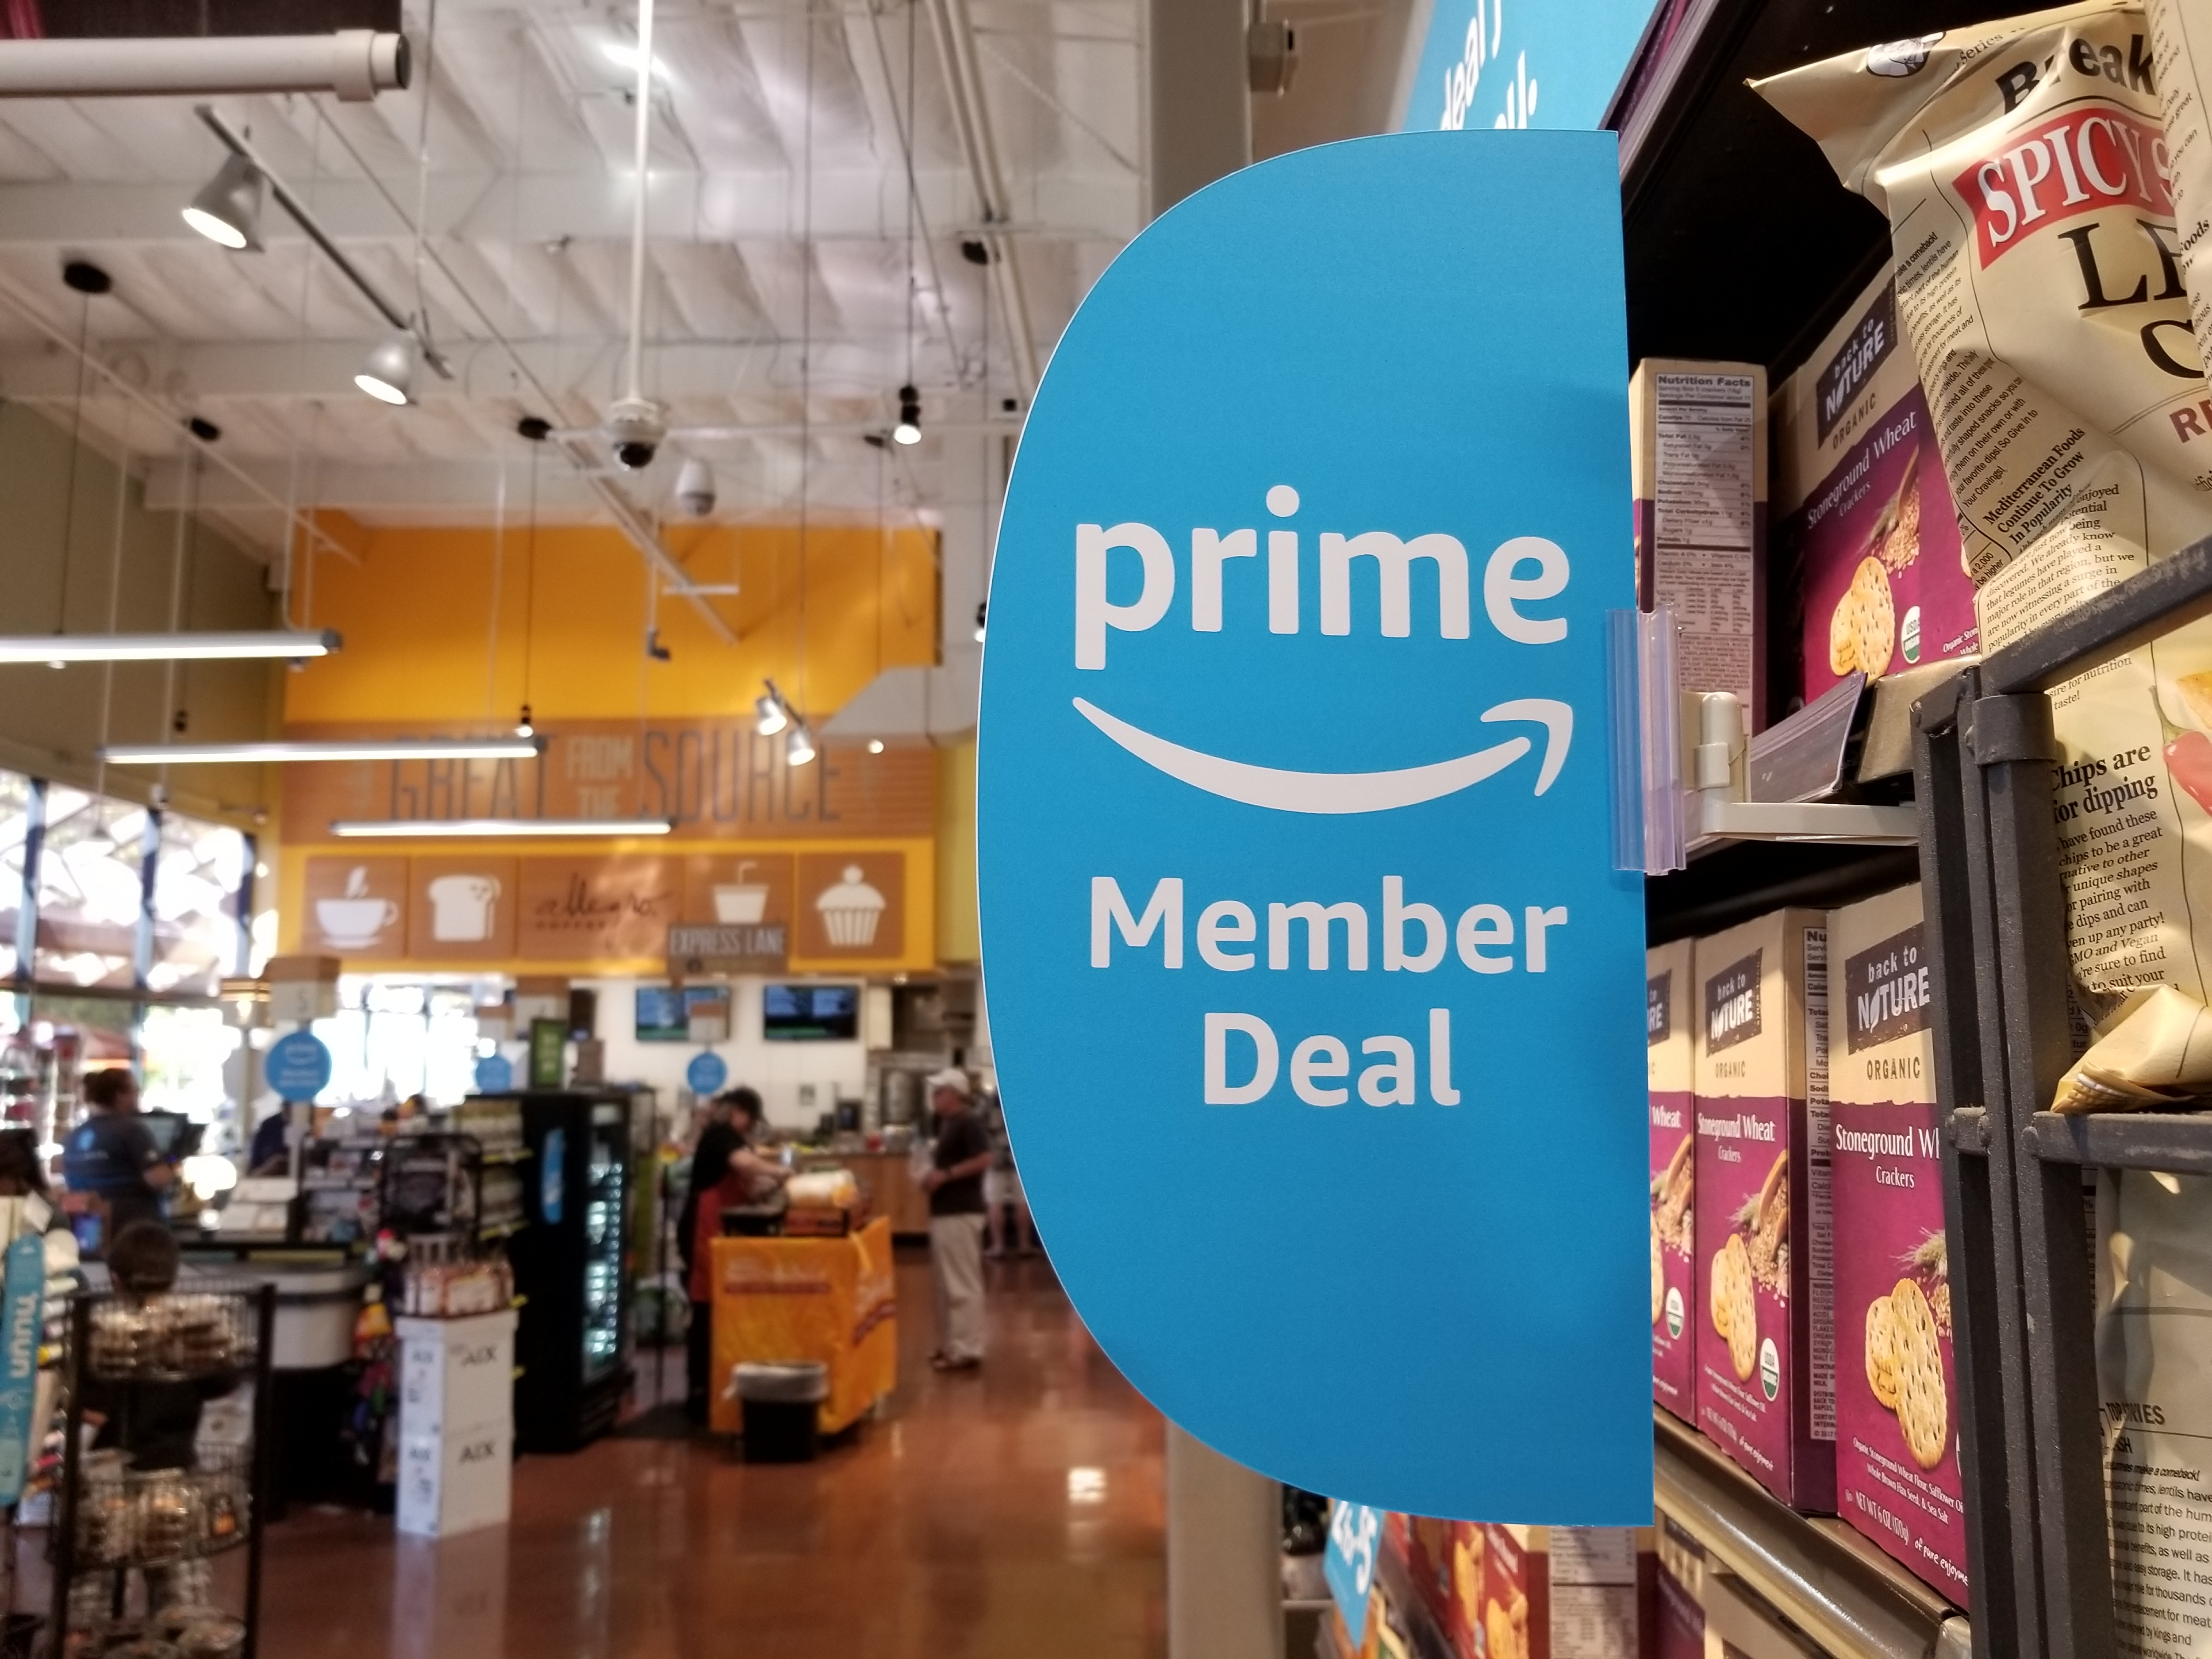 Signage at a Whole Foods Market grocery store, on a shelf of chips, advertising new discounts for members of the Amazon Prime service from Amazon.